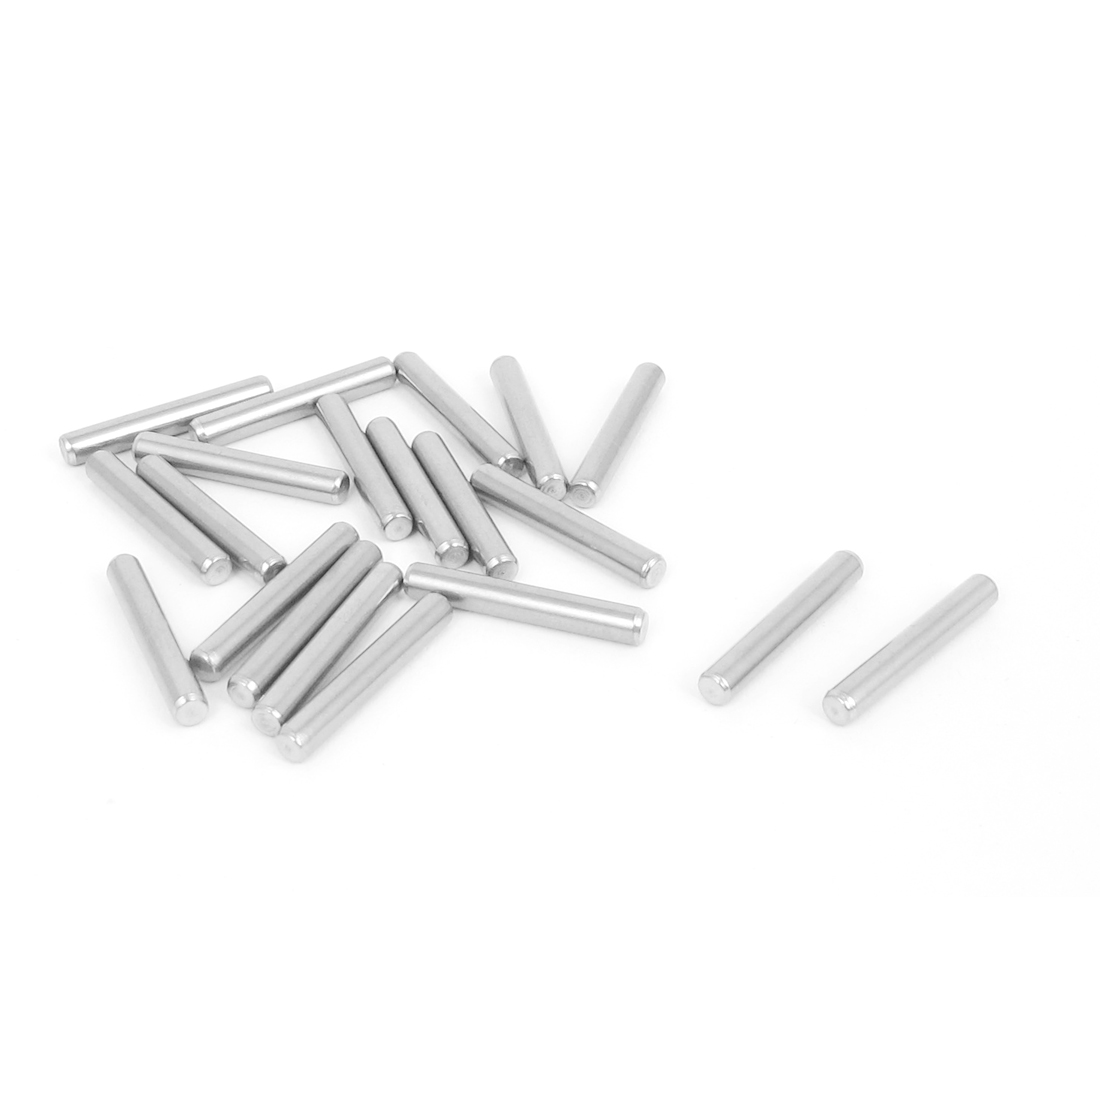 3mmx20mm 304 Stainless Steel Parallel Dowel Pins Fastener Elements 20pcs